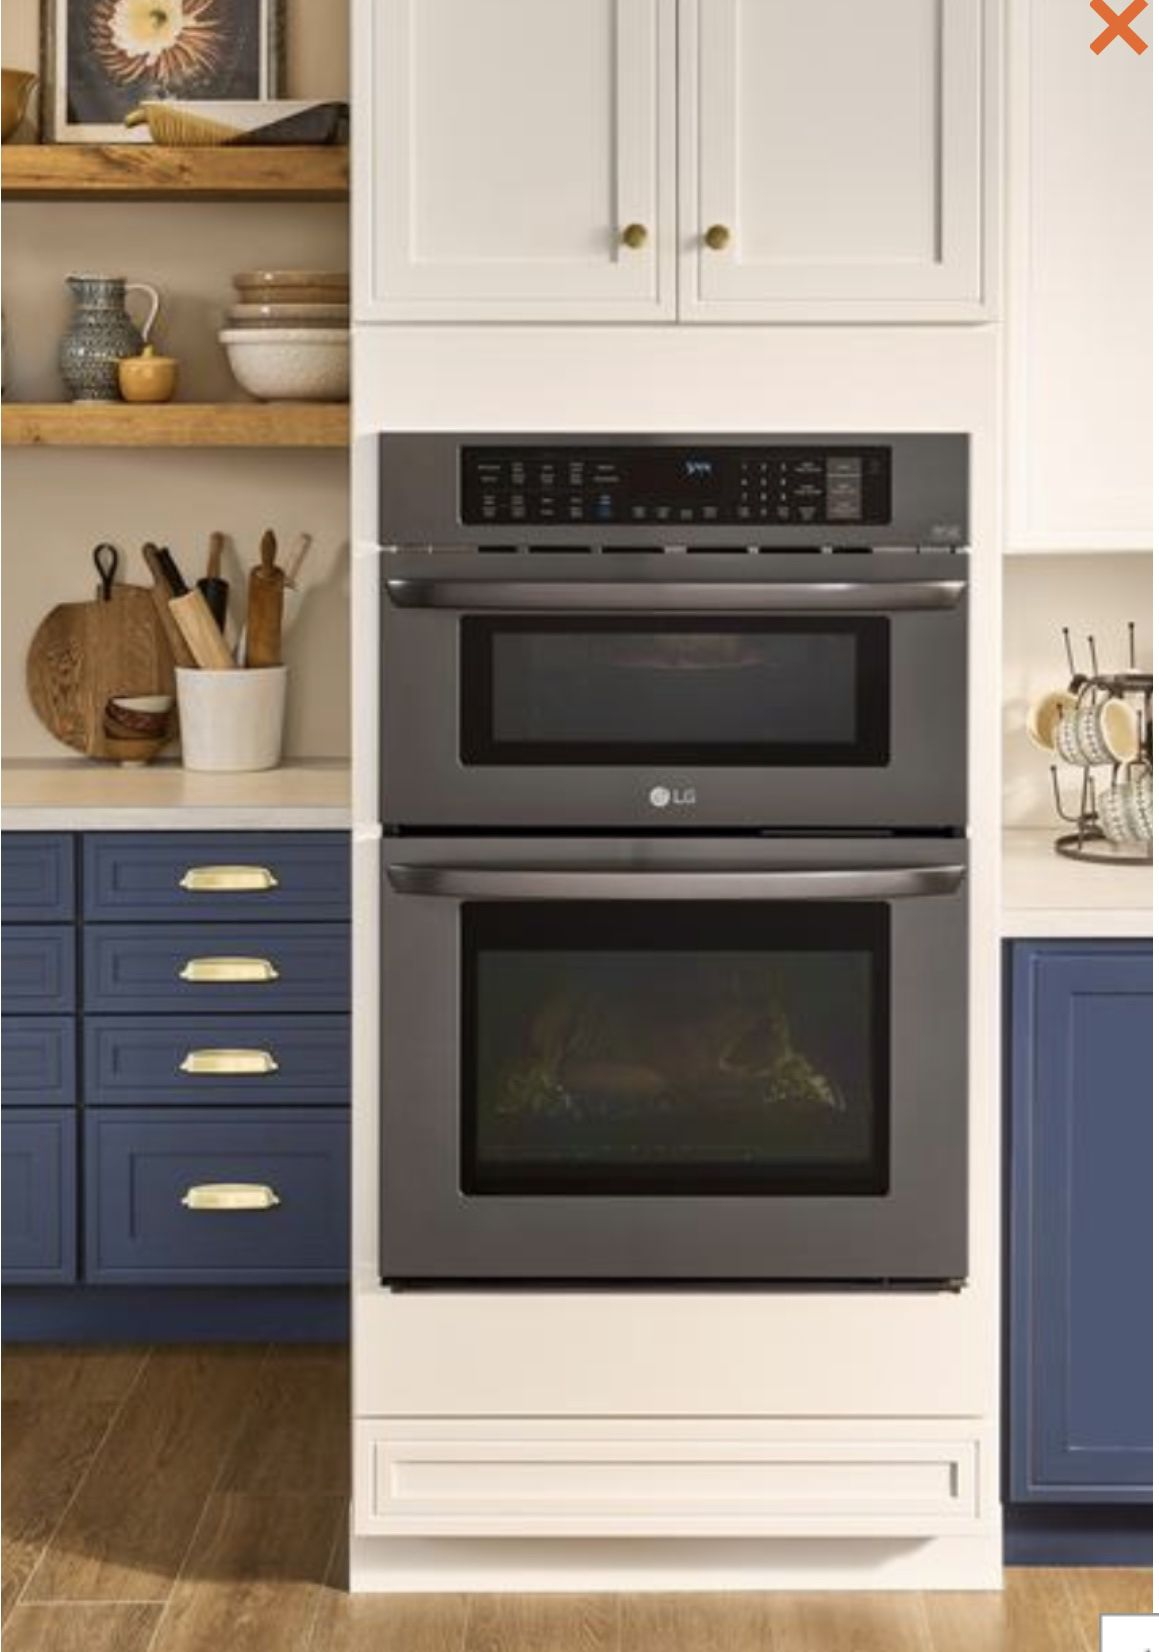 Lg Electronics 30 In Combination Double Electric Smart Wall Oven W Convection Easyclean Built Microwave Black Stainless Steel Lwc3063bd The Home Dep Kitchen Finishes